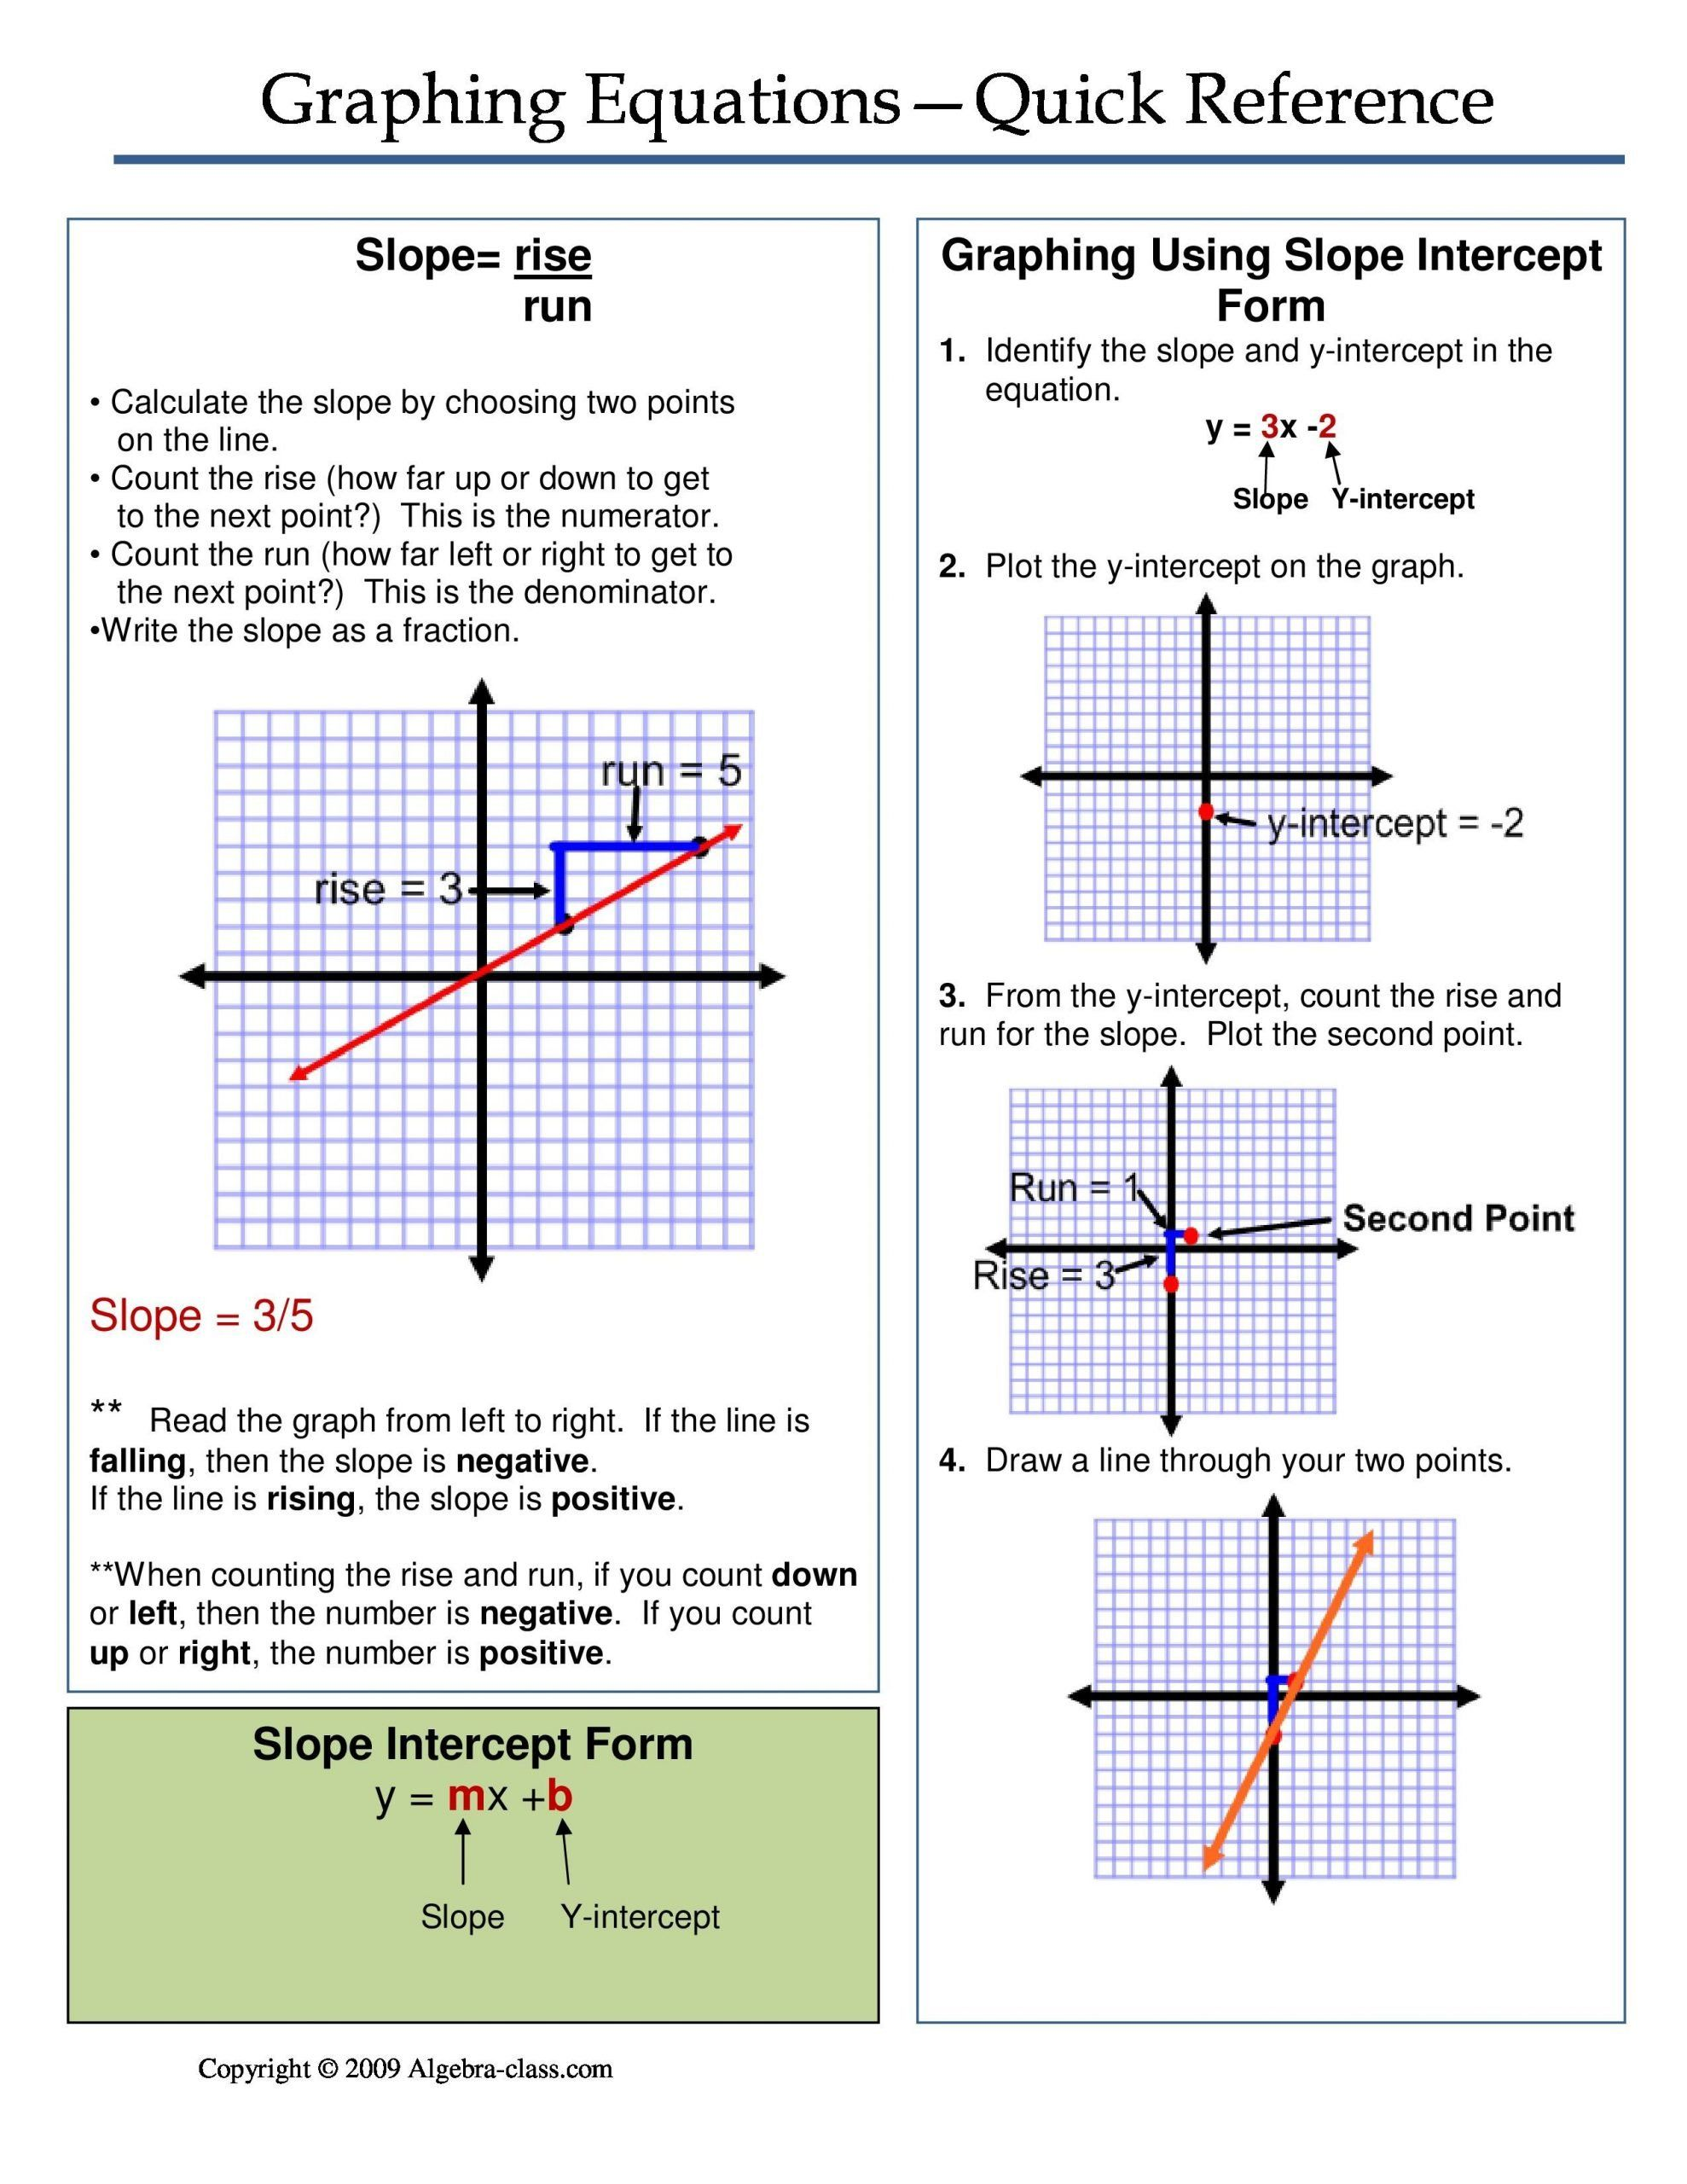 Transformations Of Quadratic Functions Worksheet E Page Notes Worksheet For The Graphing Equations Unit In 2020 Graphing Linear Equations Equations Slope Math